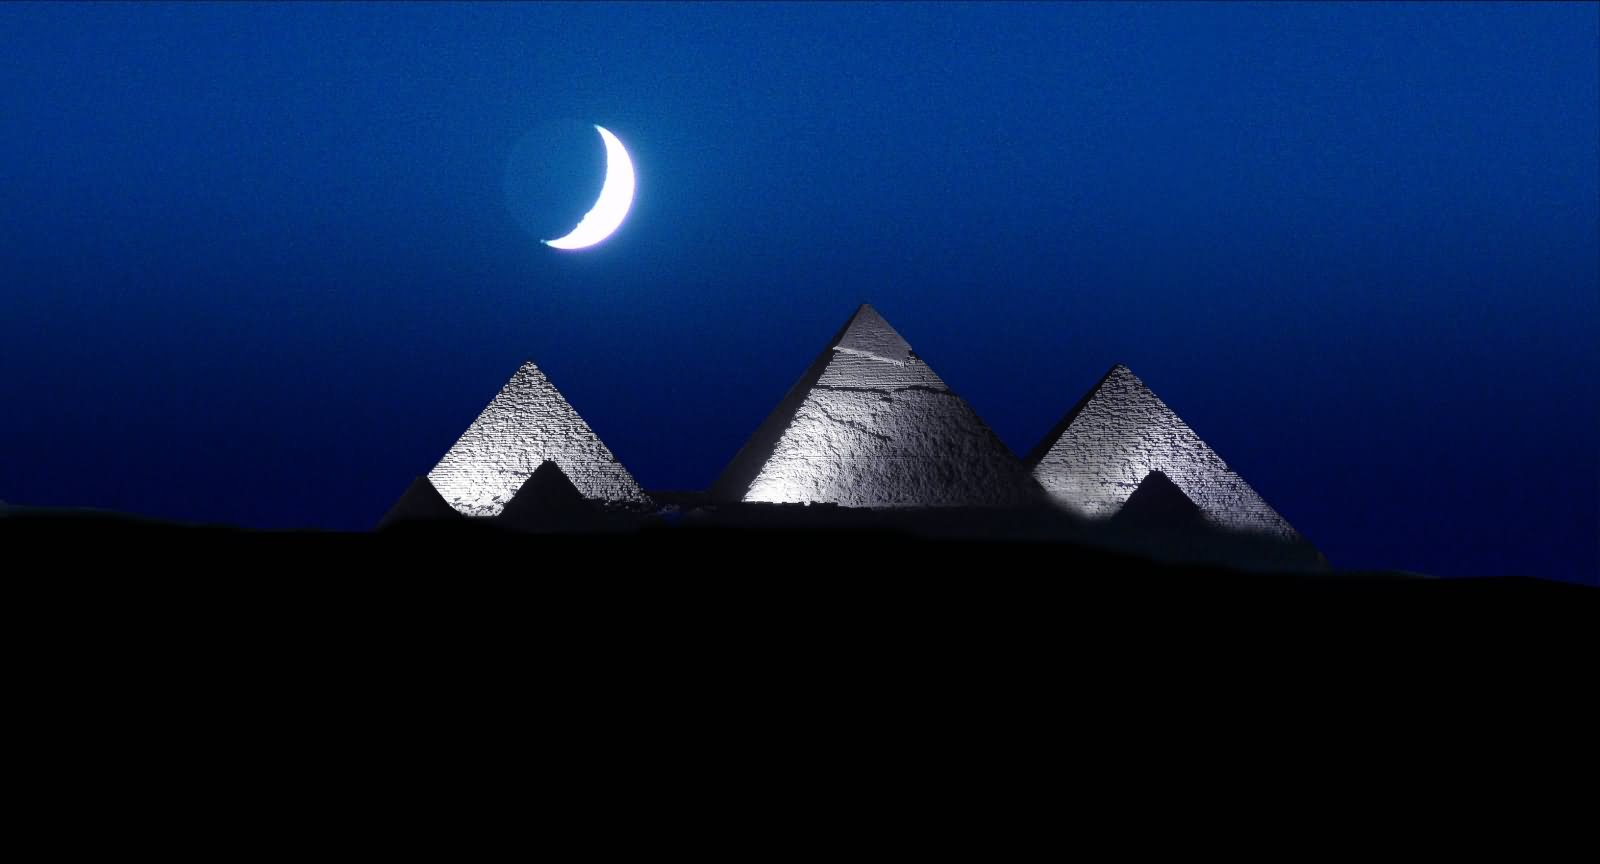 The Egyptian Pyramid With Half Moon At Night